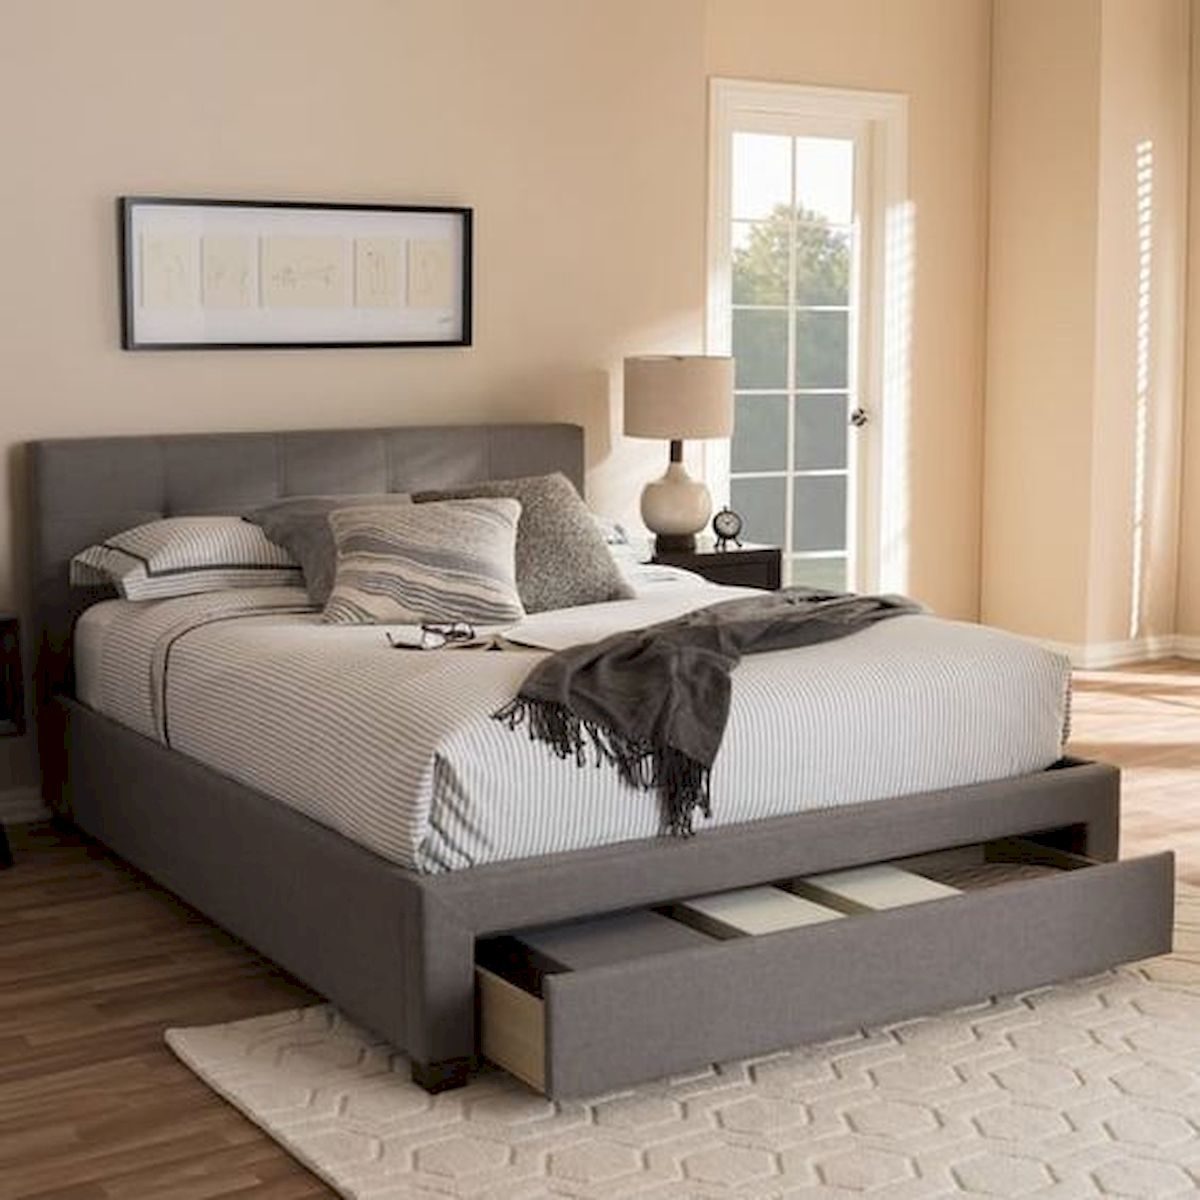 60 Brilliant Space Saving Ideas For Small Bedroom (25)